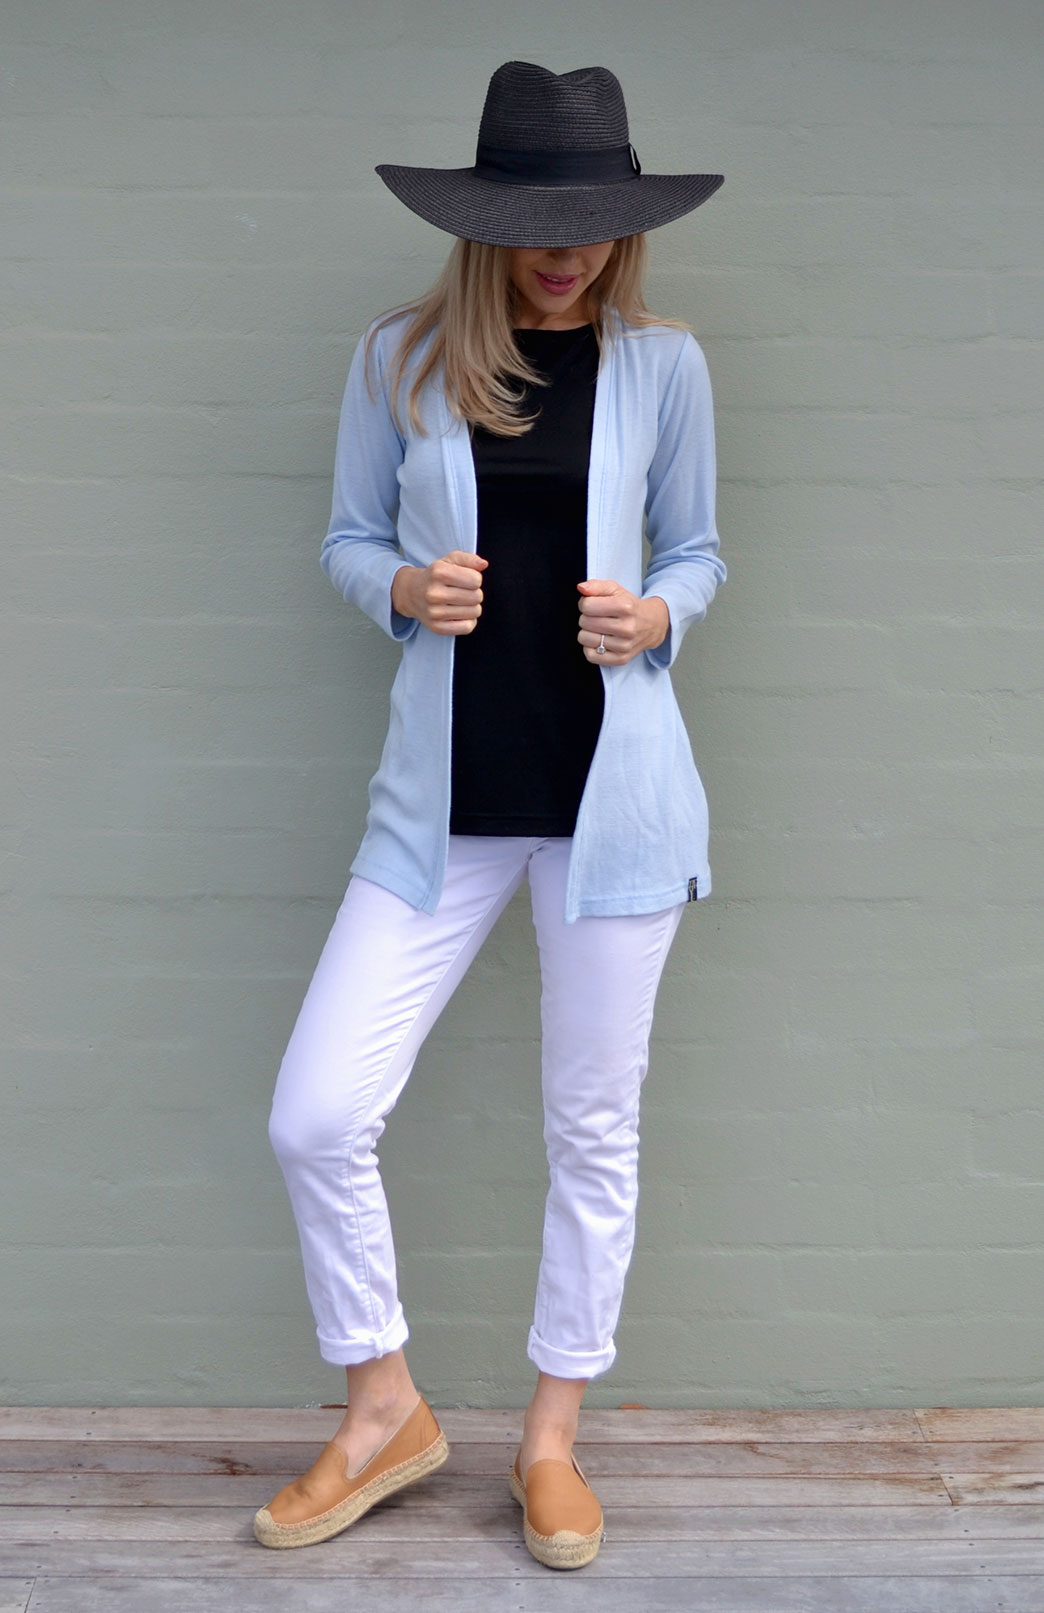 Slimline Cardigan - Women's Classic Light Blue Long Sleeve Simple Merino Wool Cardigan - Smitten Merino Tasmania Australia